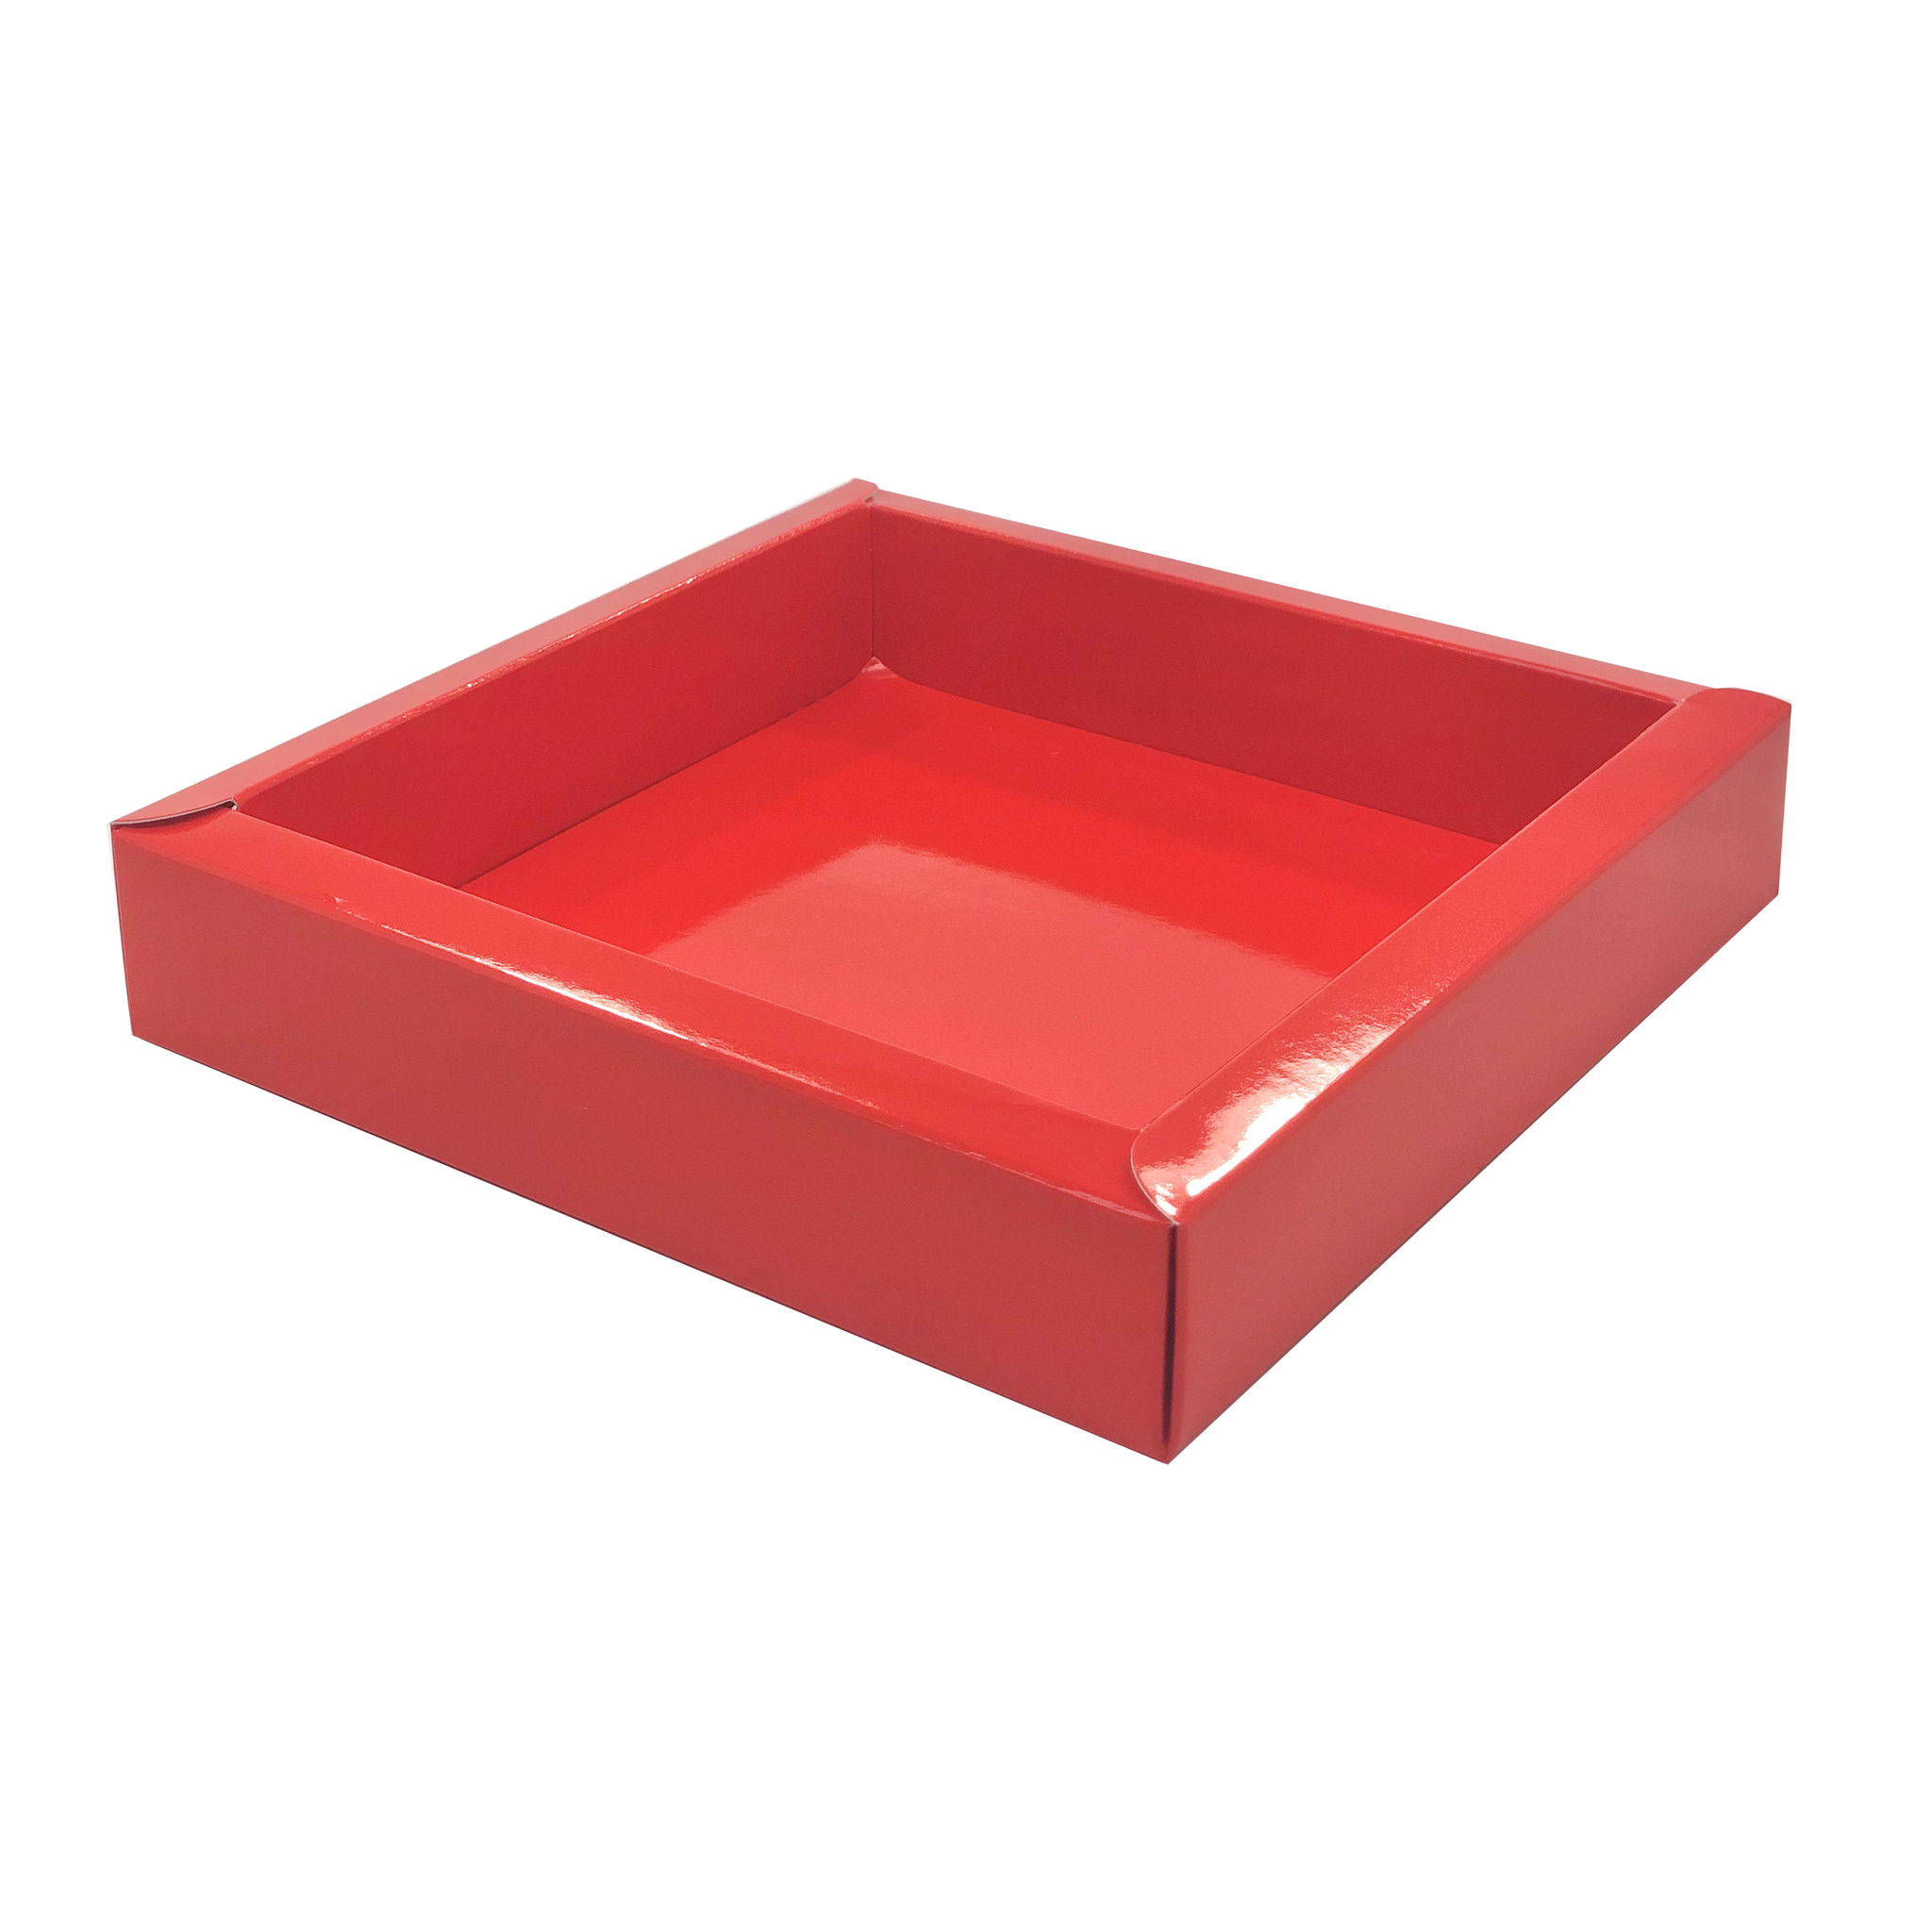 Square box red with transparant lid  120*120*27mm - 36 pieces